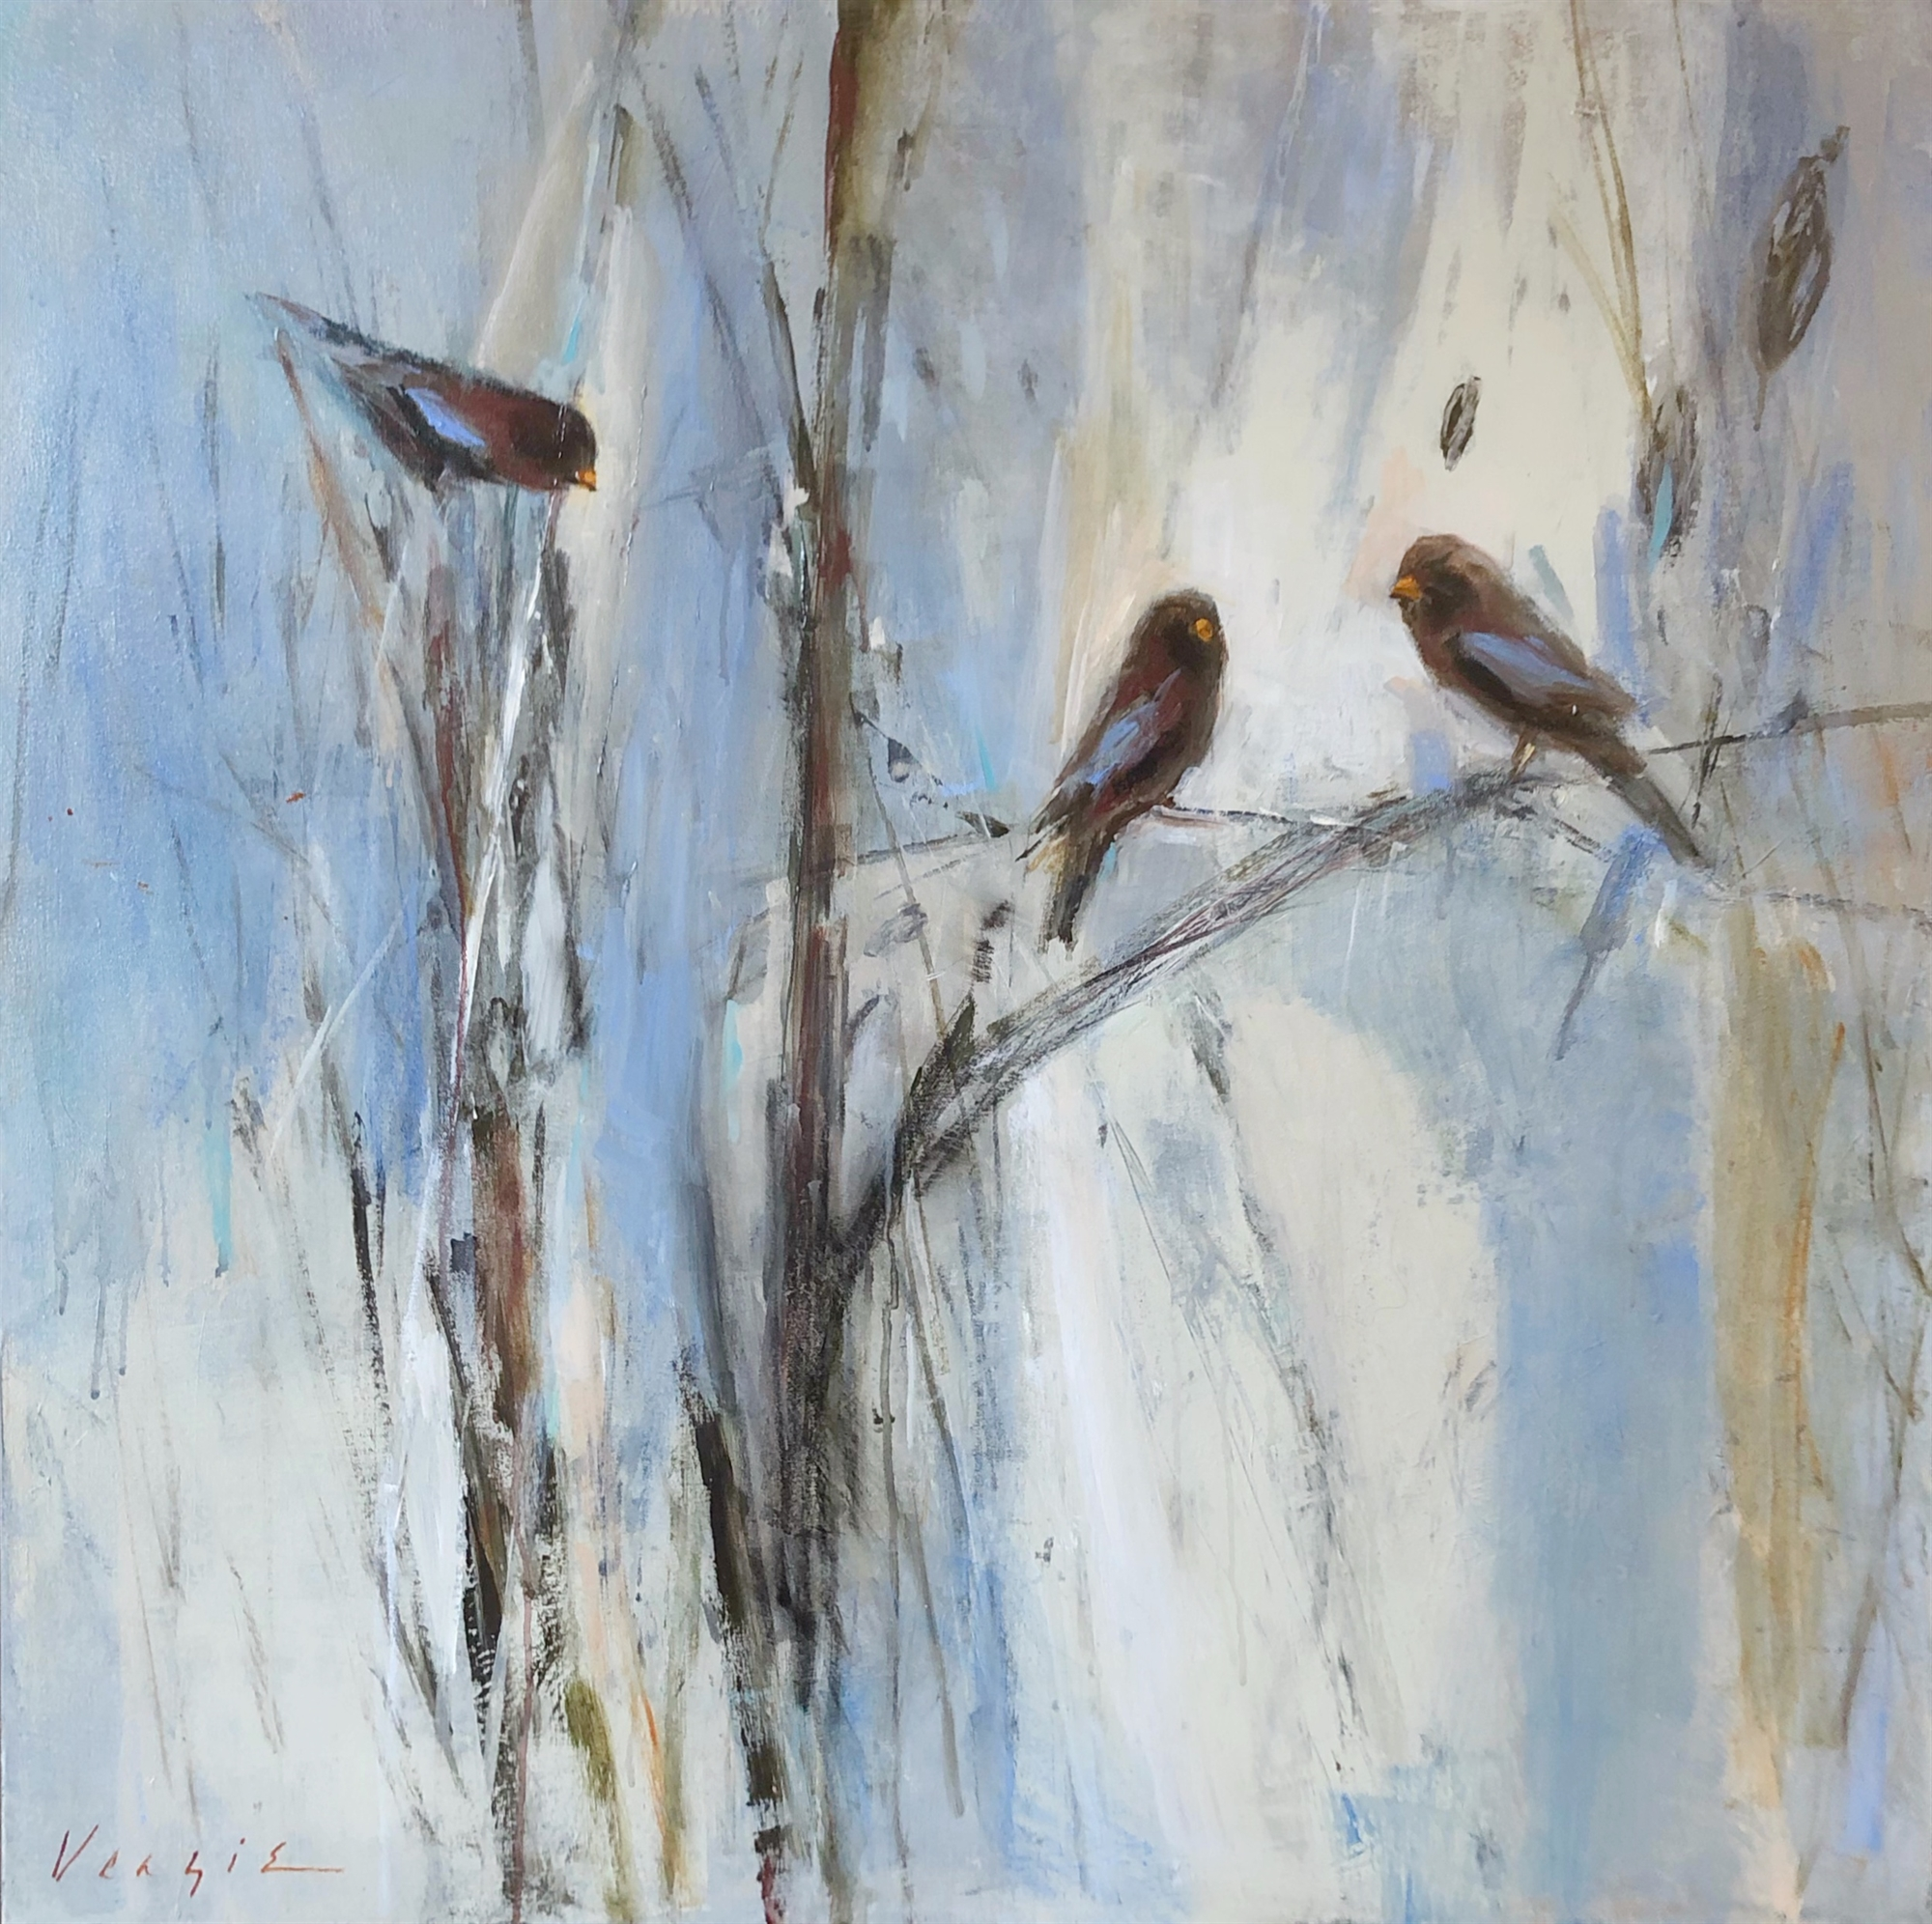 Three's Company by Mary Miller Veazie